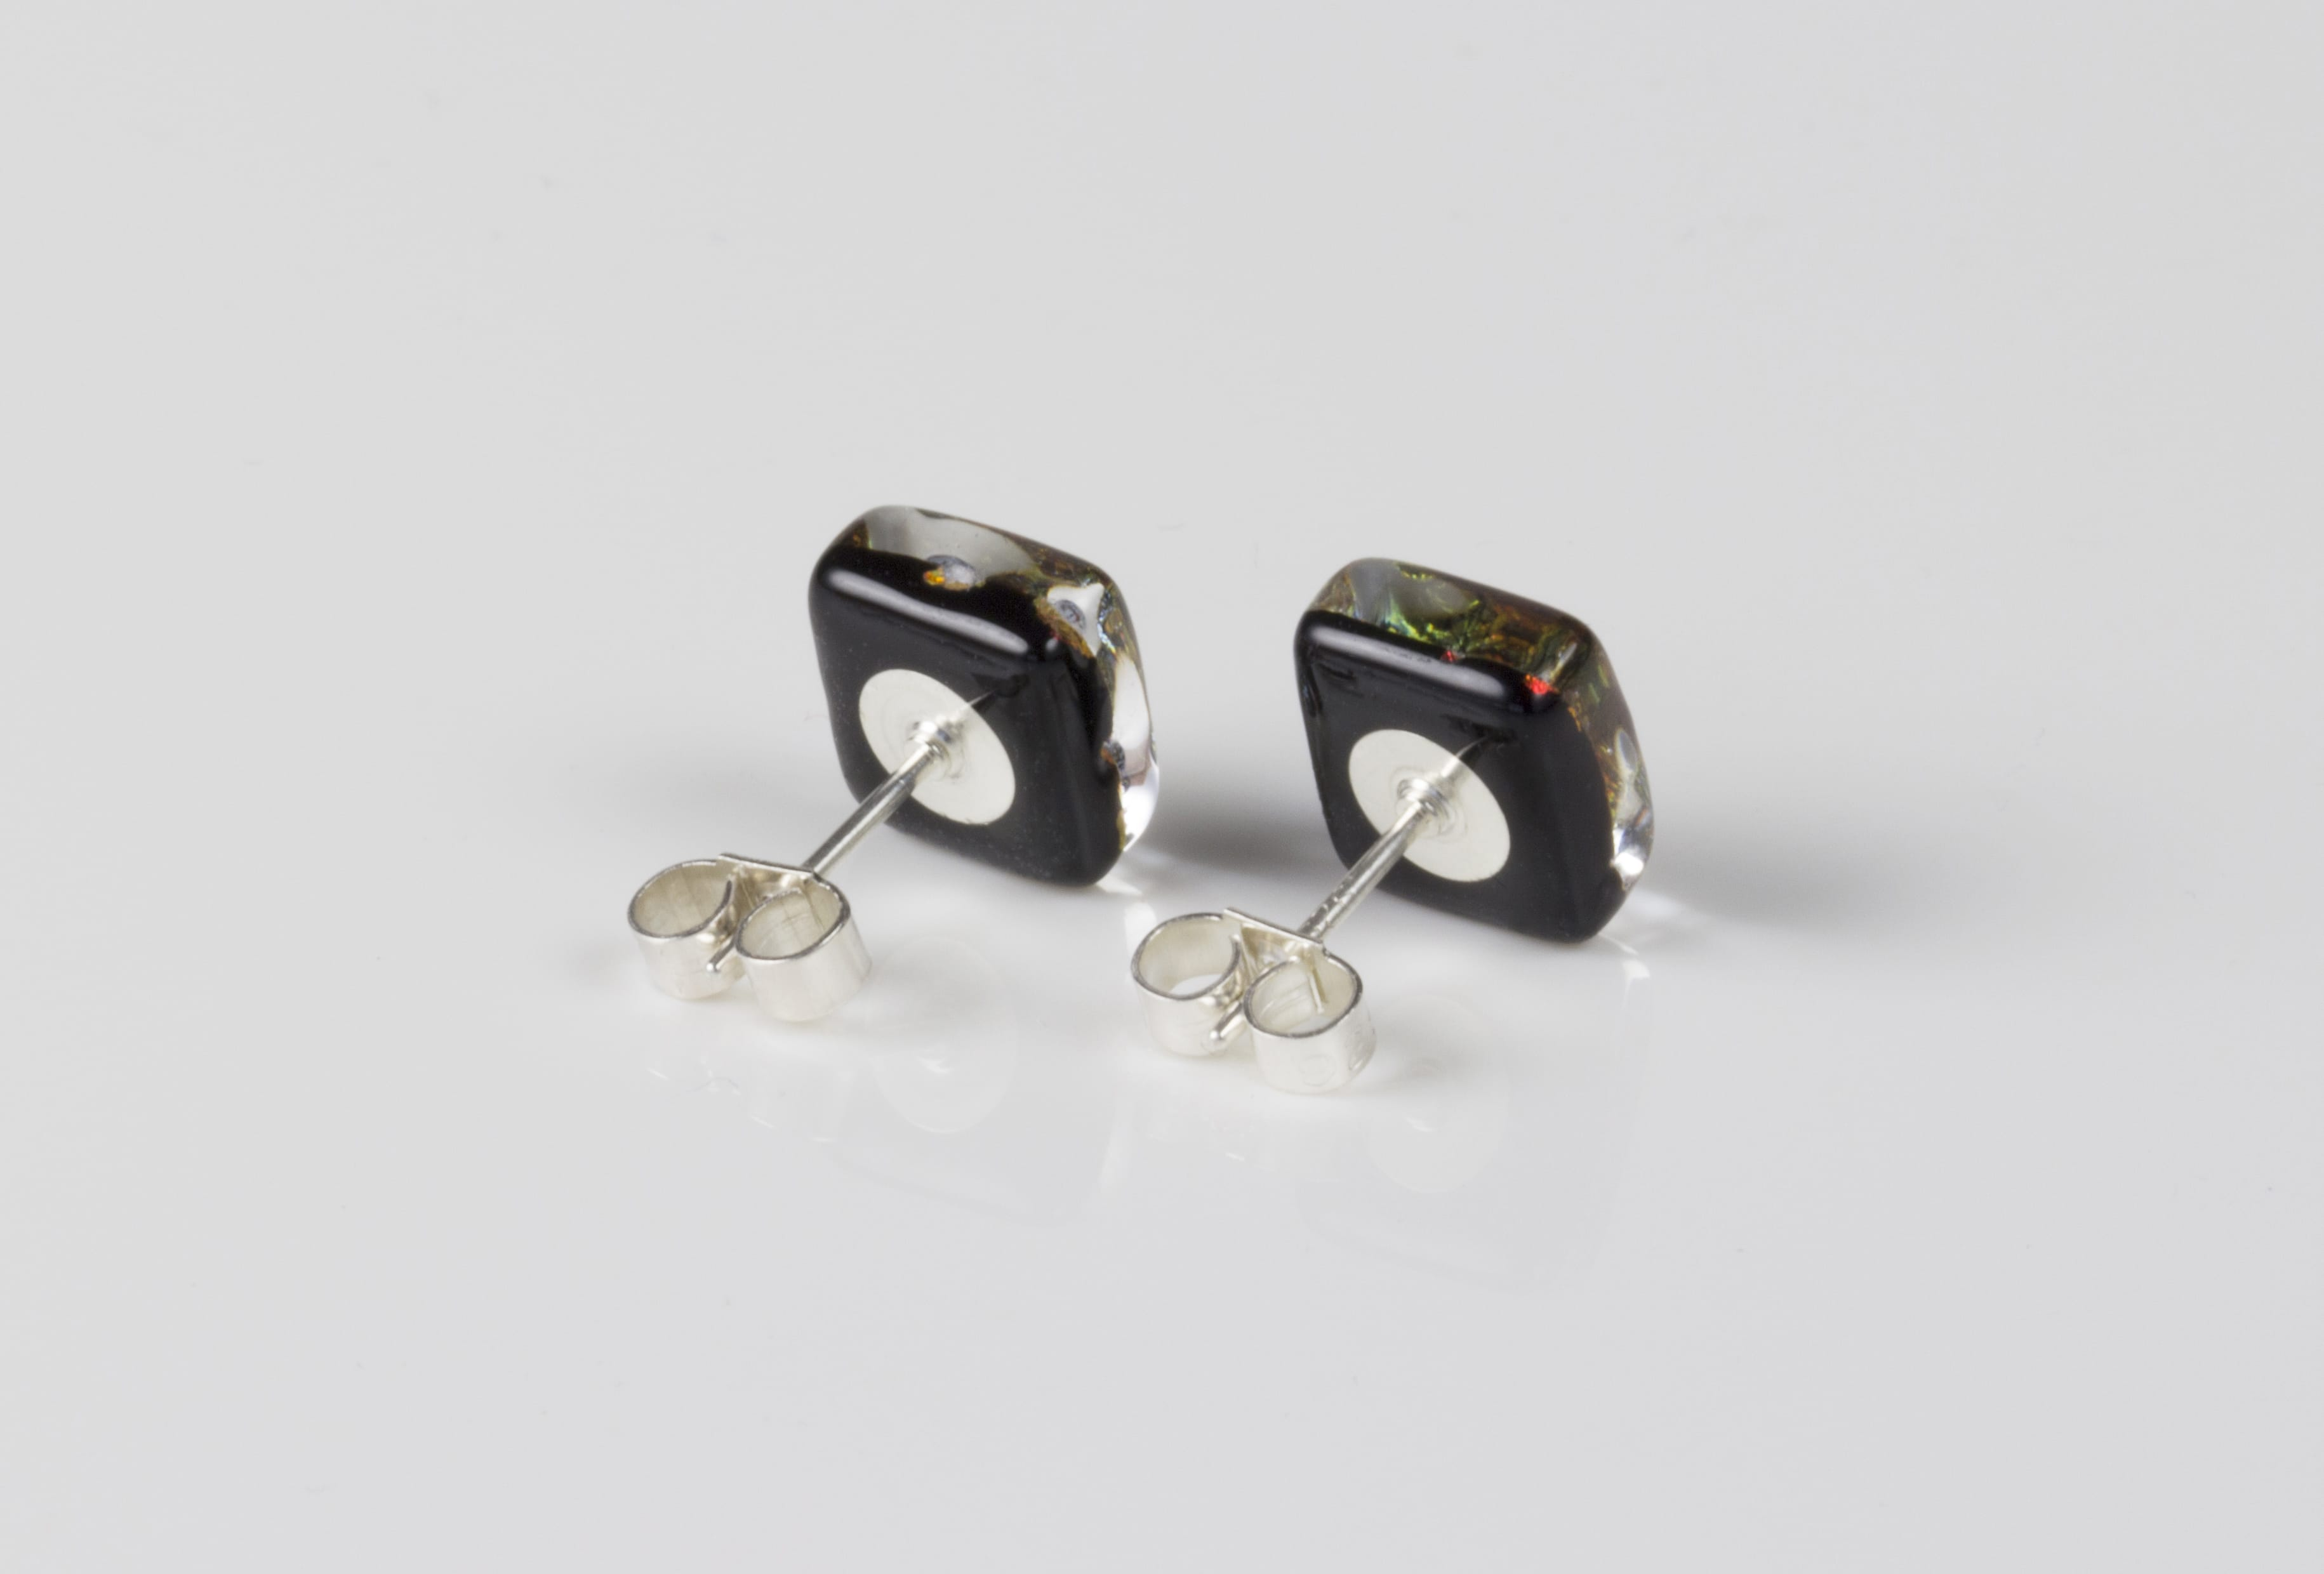 Dichroic glass jewellery uk, Handmade Earrings 2 tone pink glass earrings, stud earrings with sterling silver posts, square, glass 8-10mm